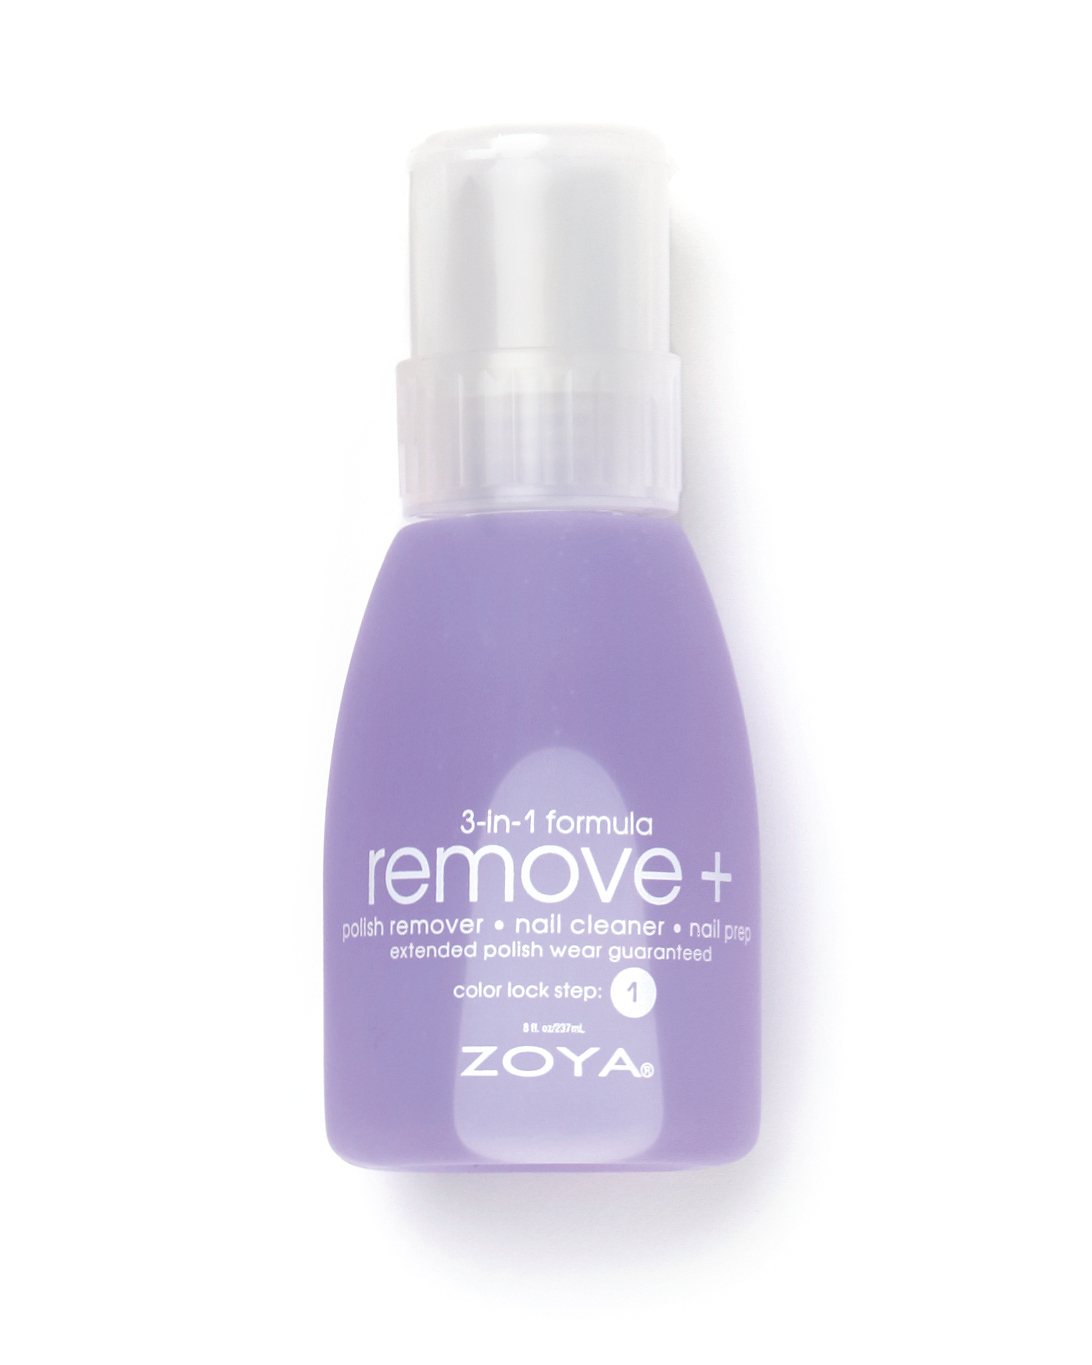 zoya-remove-plus-mwd109646.jpg